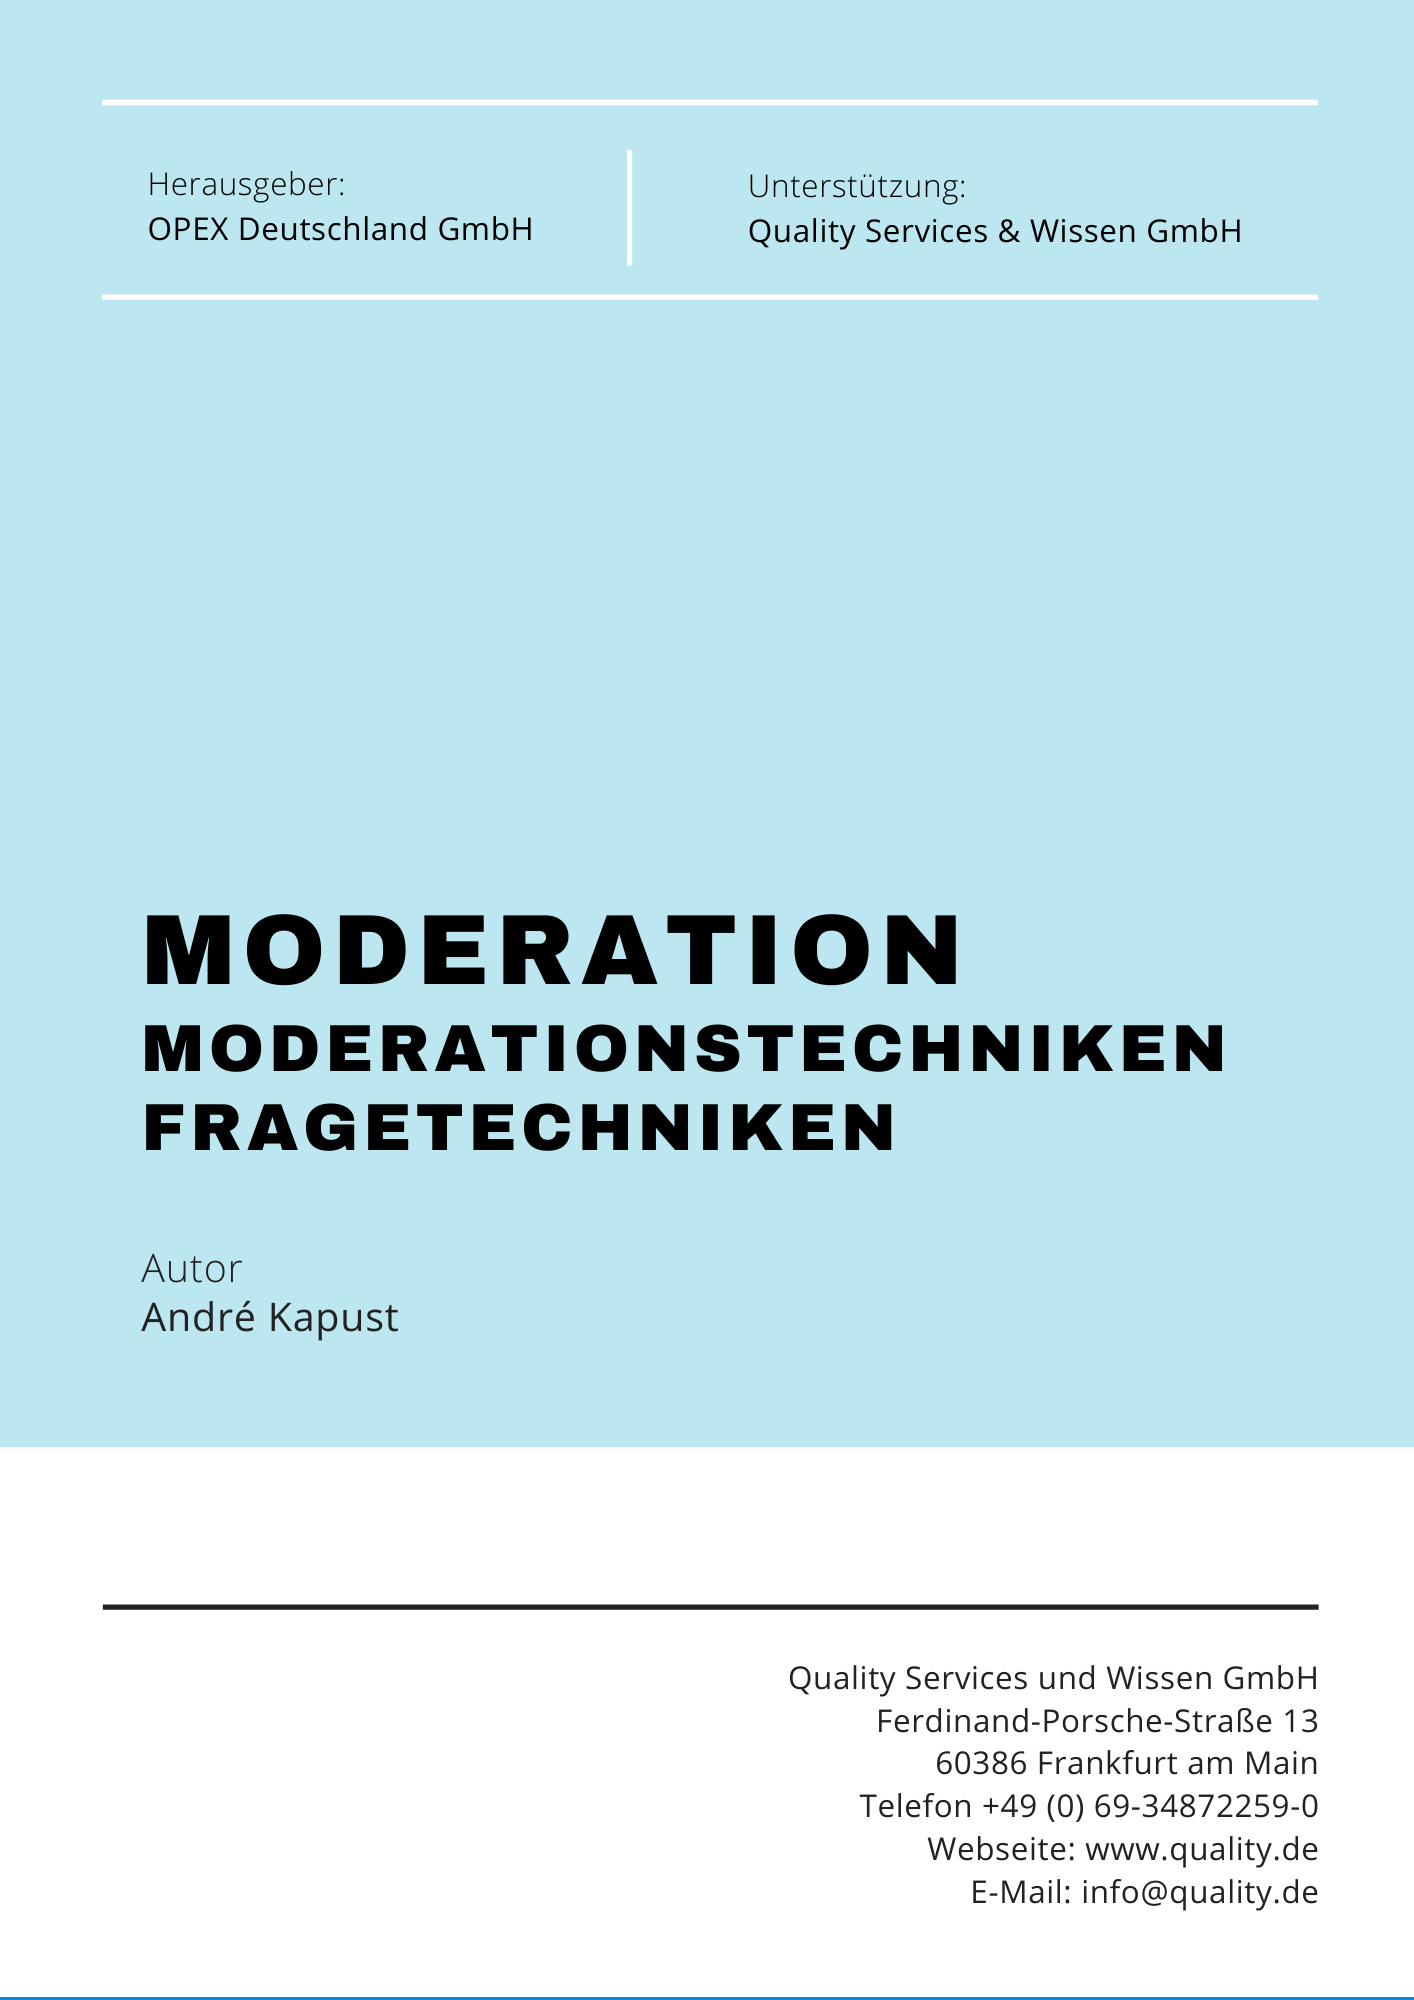 Moderation & Fragetechniken